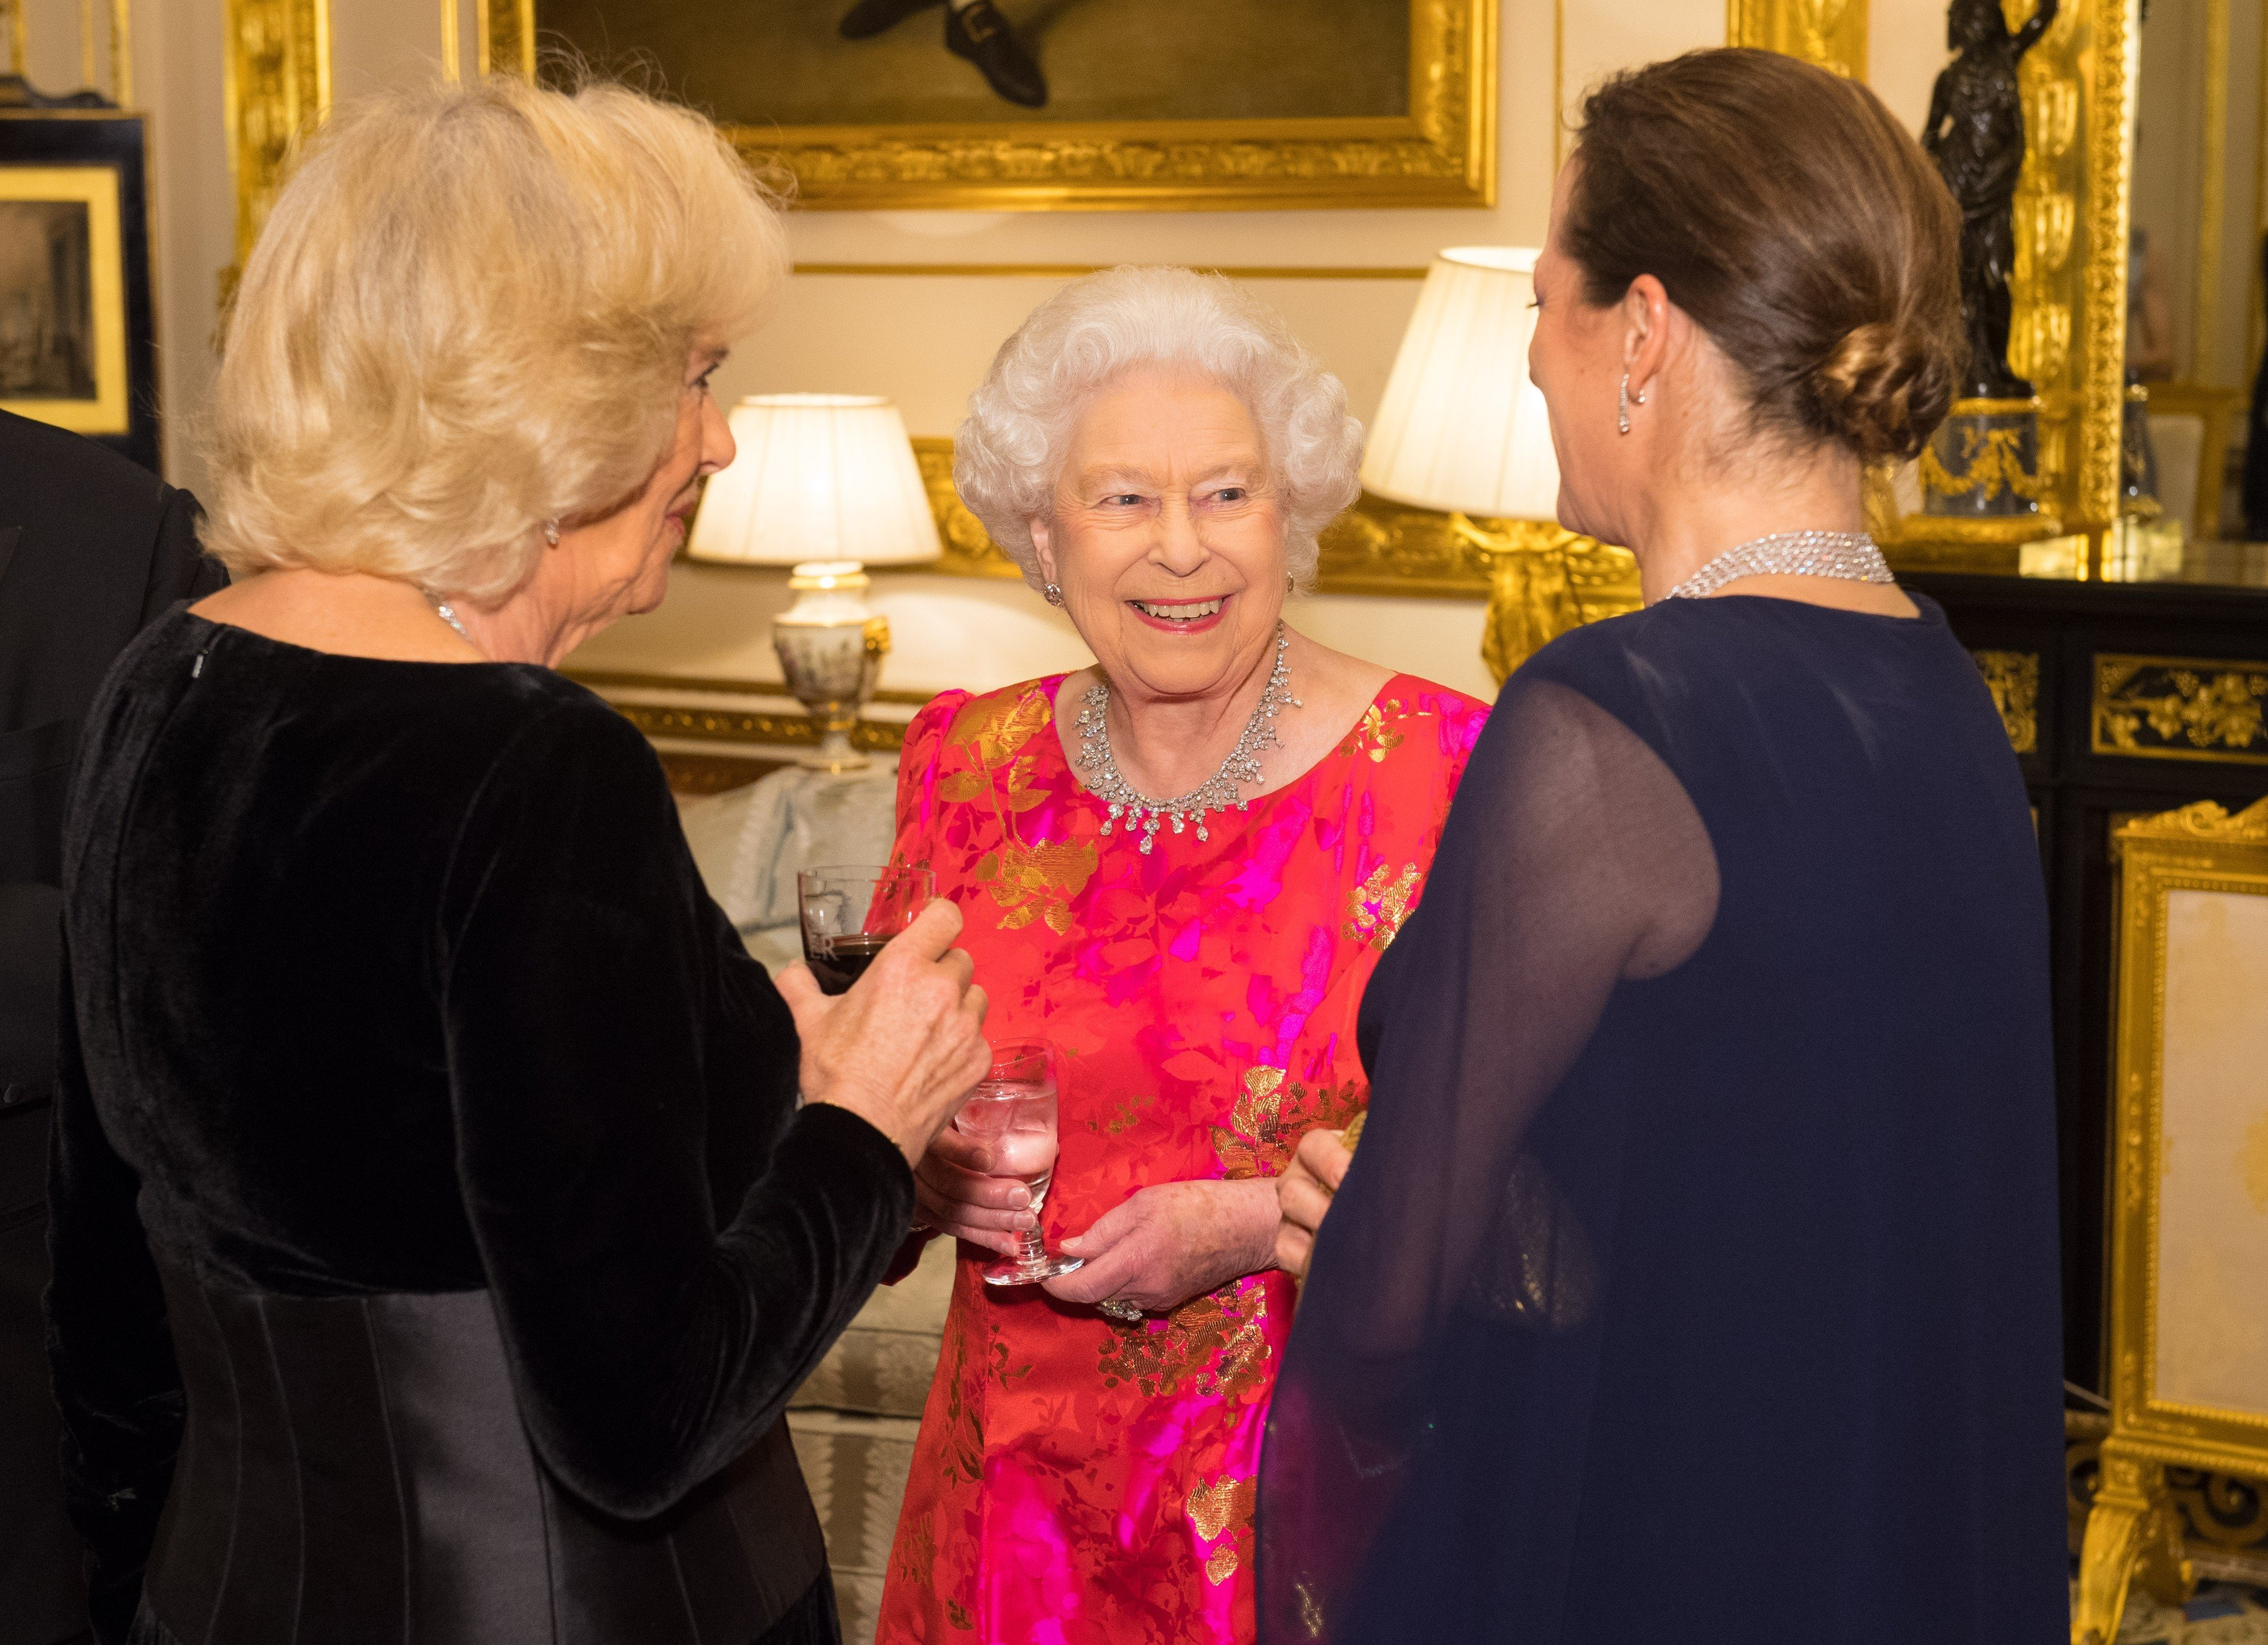 Queen Elizabeth II with the Duchess of Cornwall (left) and Princess Zahra Aga Khan in the White Drawing Room at Windsor Castle, during a reception before a private dinner to mark the diamond jubilee of the Aga Khan's leadership as Imam of the Shia Ismaili Muslim Community.   Thursday March 8, 2018., Image: 365582722, License: Rights-managed, Restrictions: WORLD RIGHTS - Fee Payable Upon Reproduction - For queries contact Avalon.red - sales@avalon.red London: +44 (0) 20 7421 6000 Los Angeles: +1 (310) 822 0419 Berlin: +49 (0) 30 76 212 251 Madrid: +34 91 533 4289, Model Release: no, Credit line: Profimedia, UPPA News